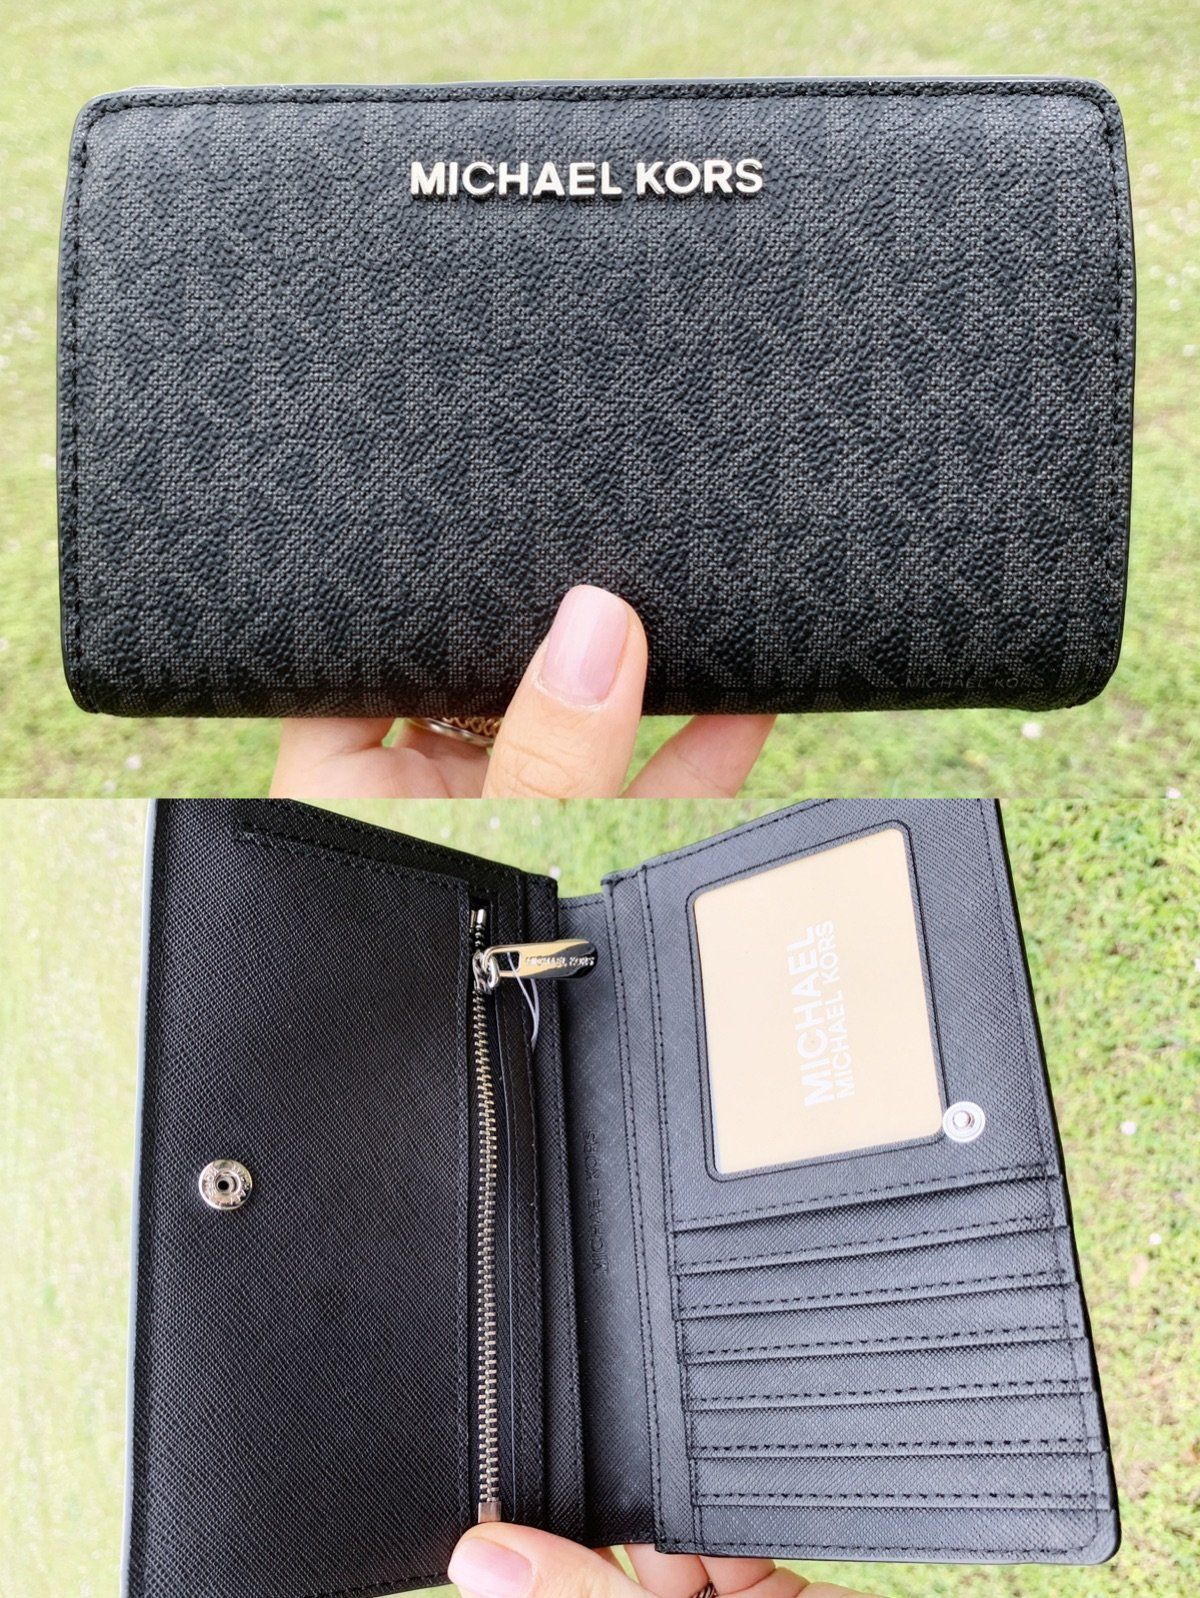 8df1610ad35a Michael Kors Jet Set Travel PVC Slim Bifold Wallet Black MK  ebaystore   poshboss  top  amazondeals  poshfashion  ebayseller  amazon  Poshmark   Handbags ...